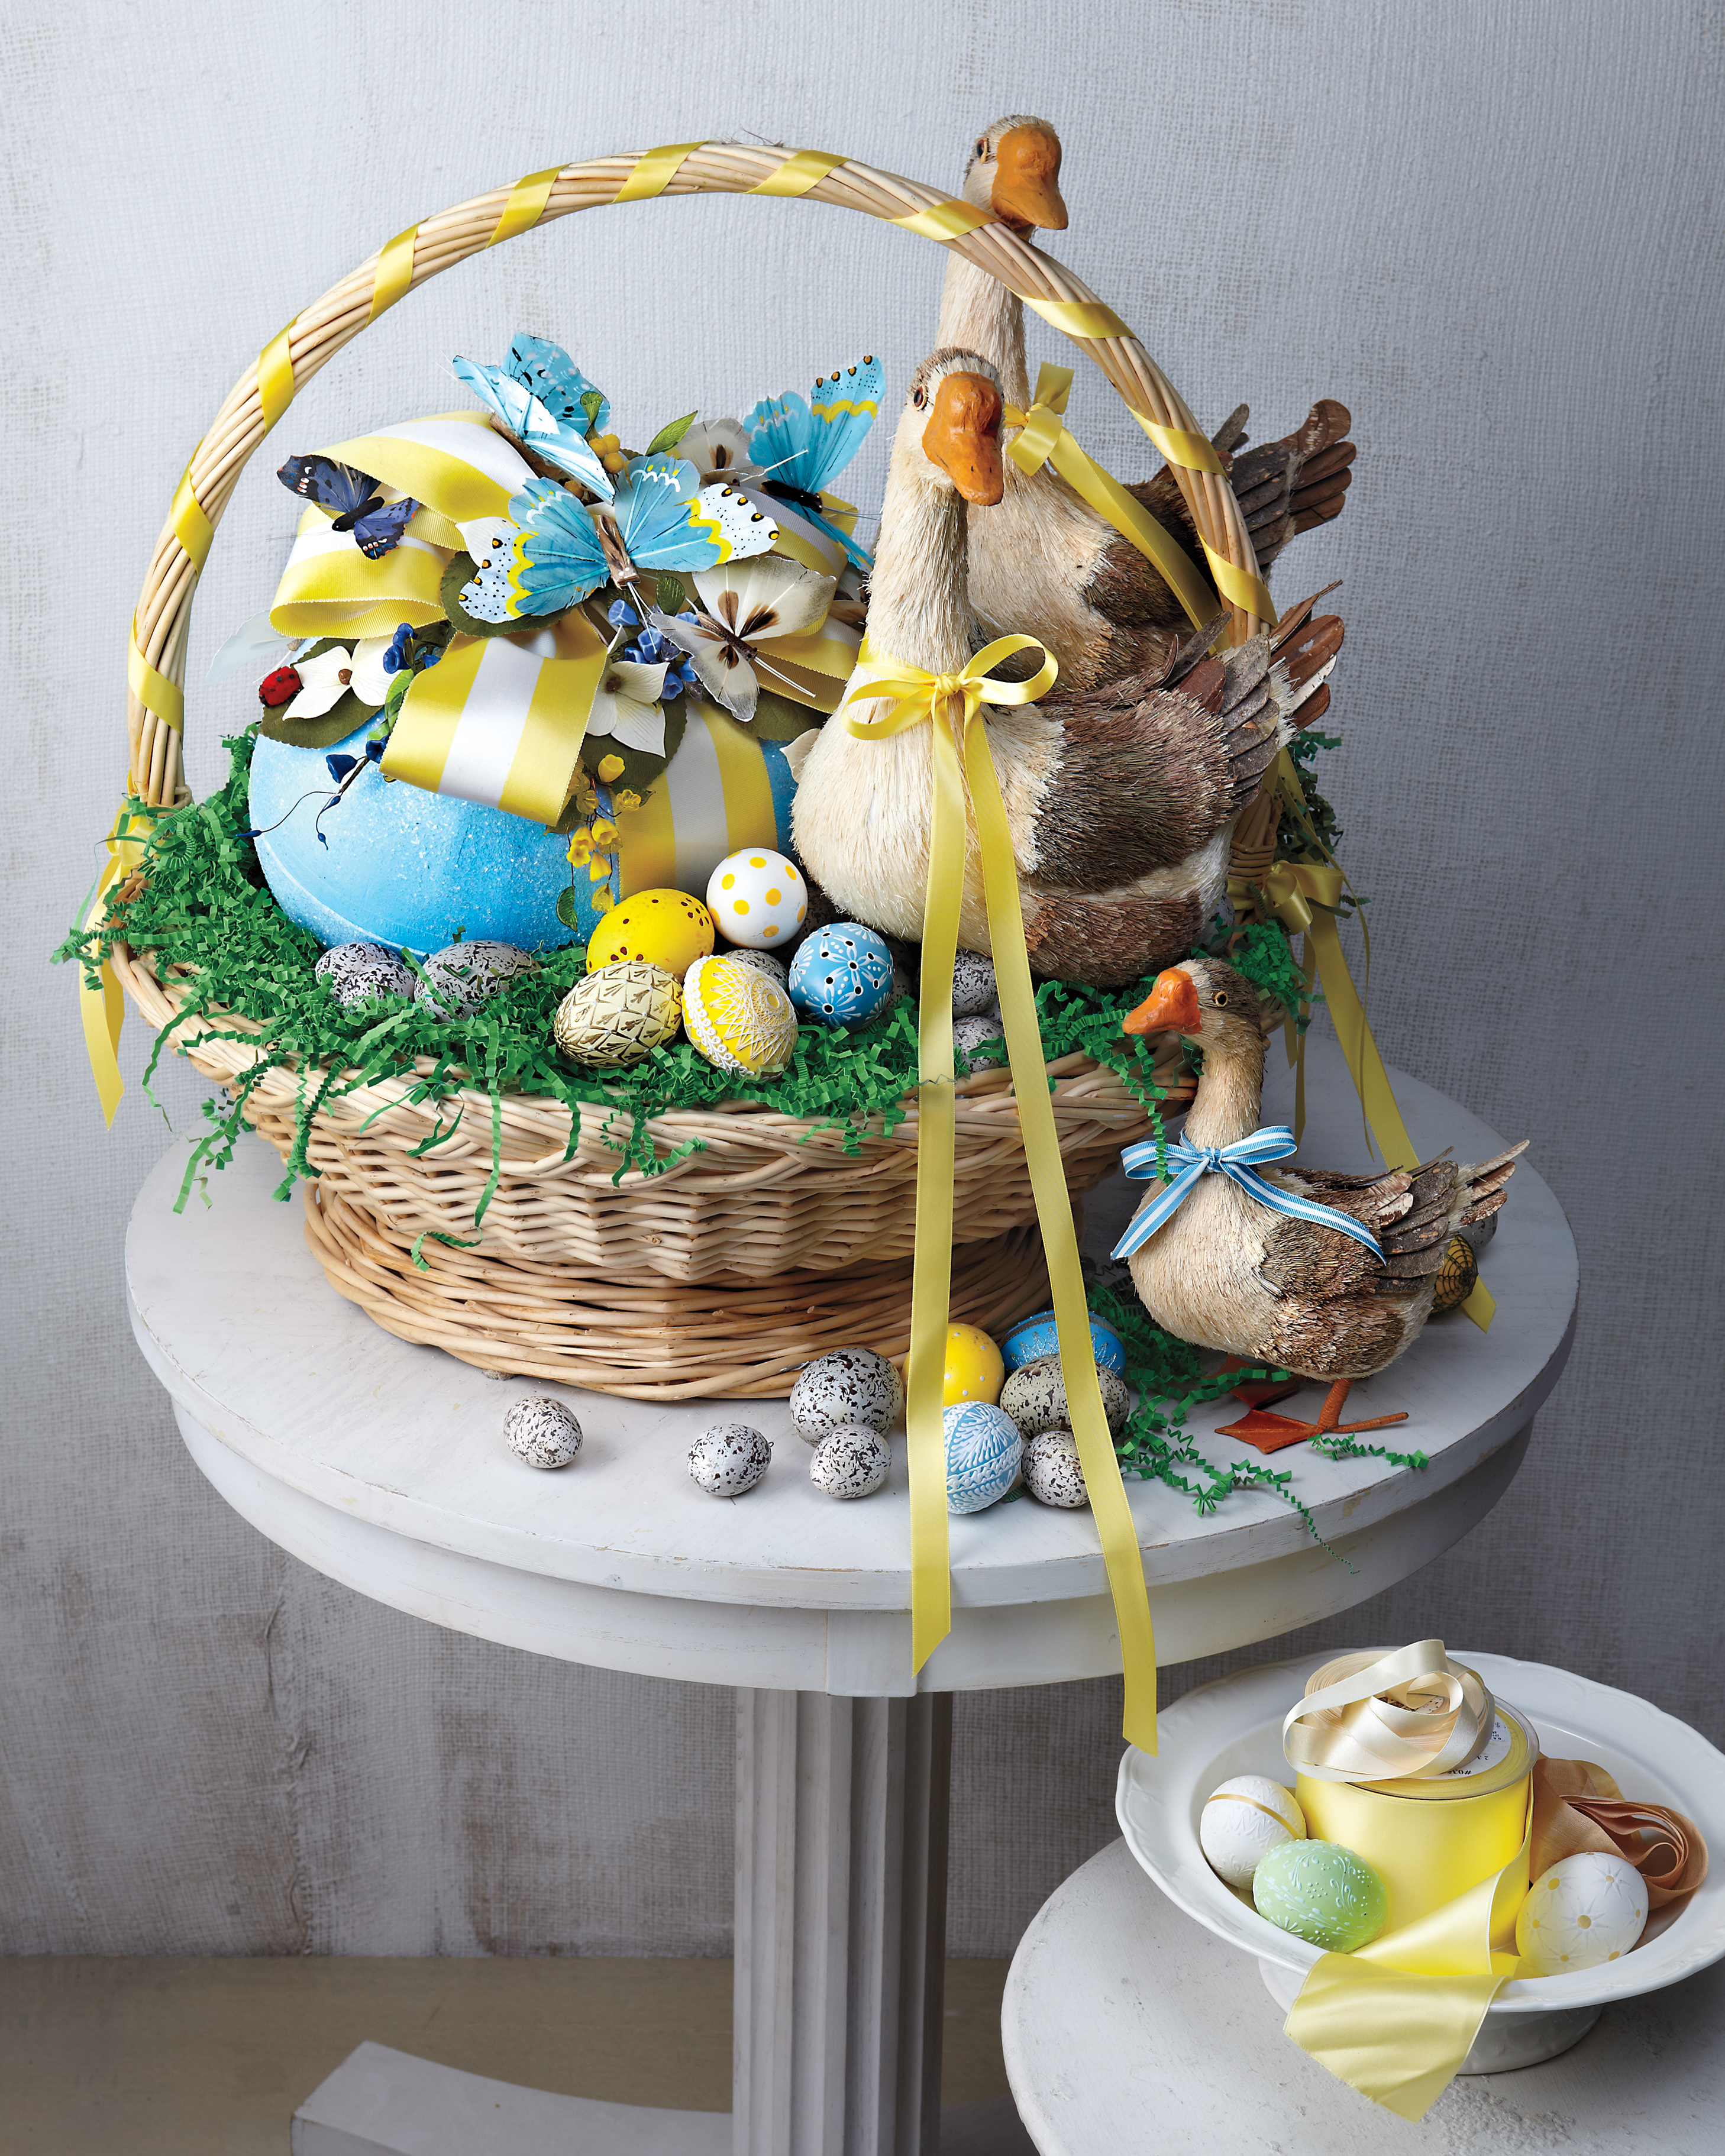 21 of Our Best Easter Basket Ideas